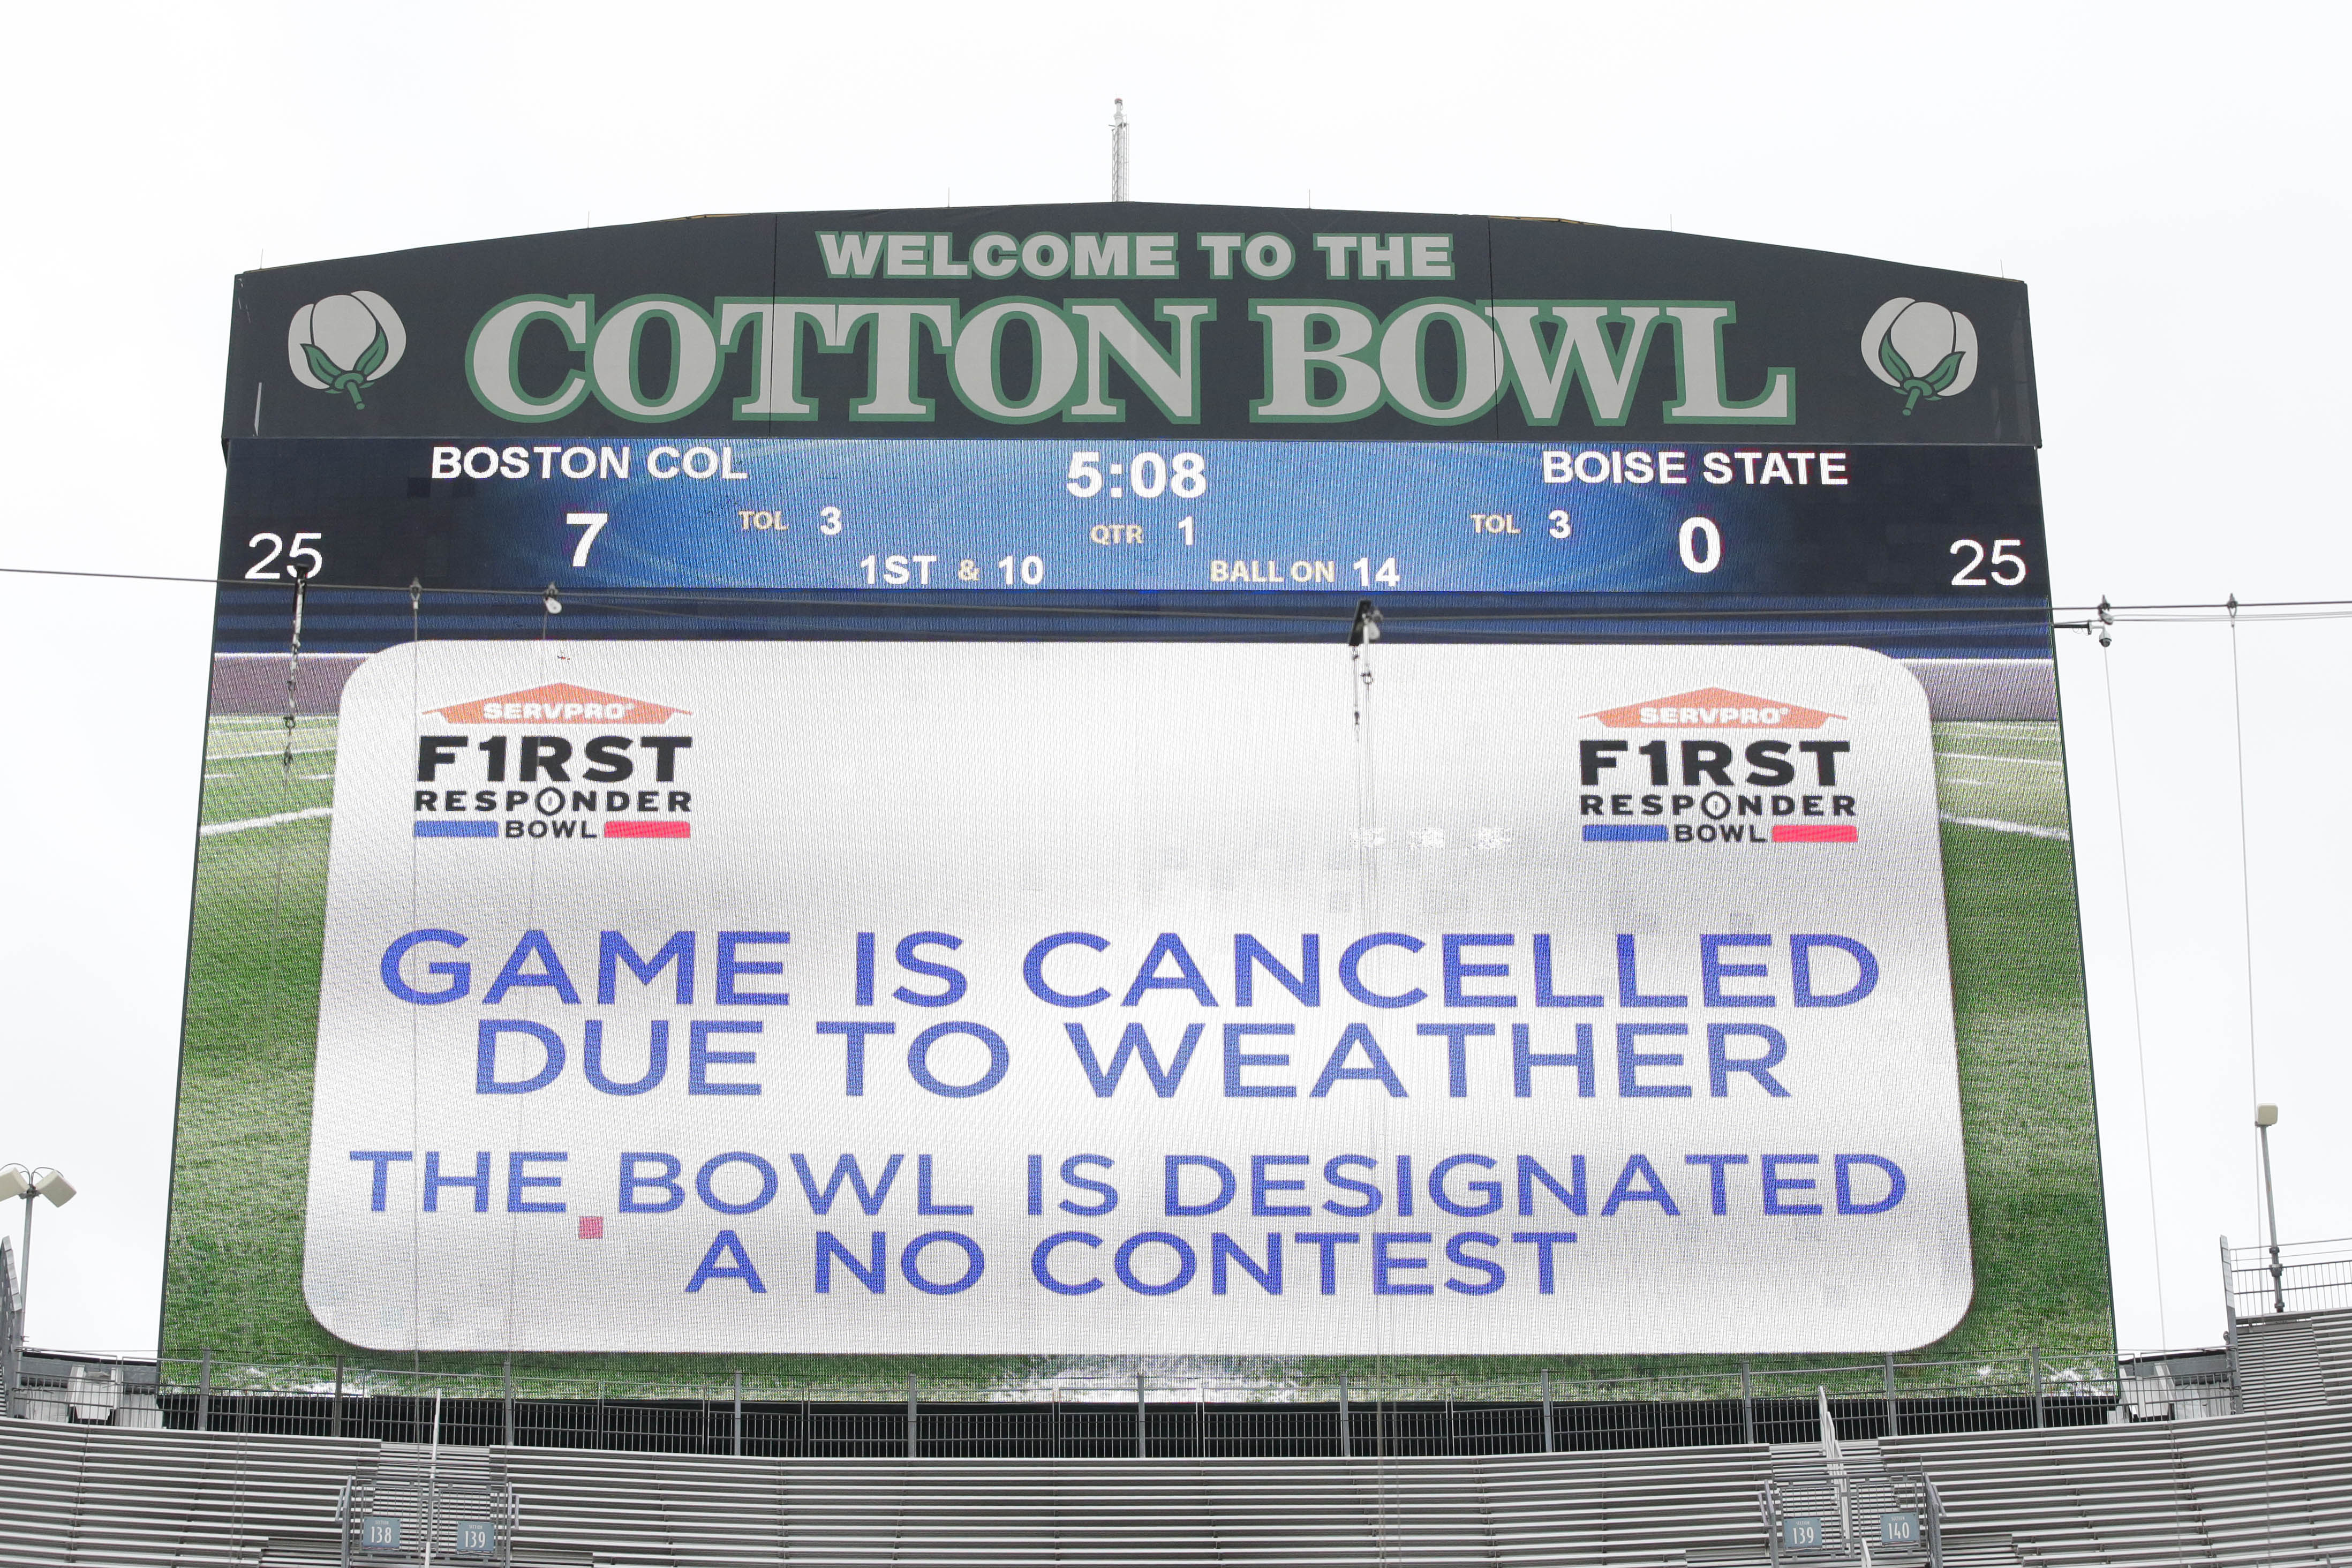 First Responder Bowl canceled: FAQs on Boise State-BC no contest